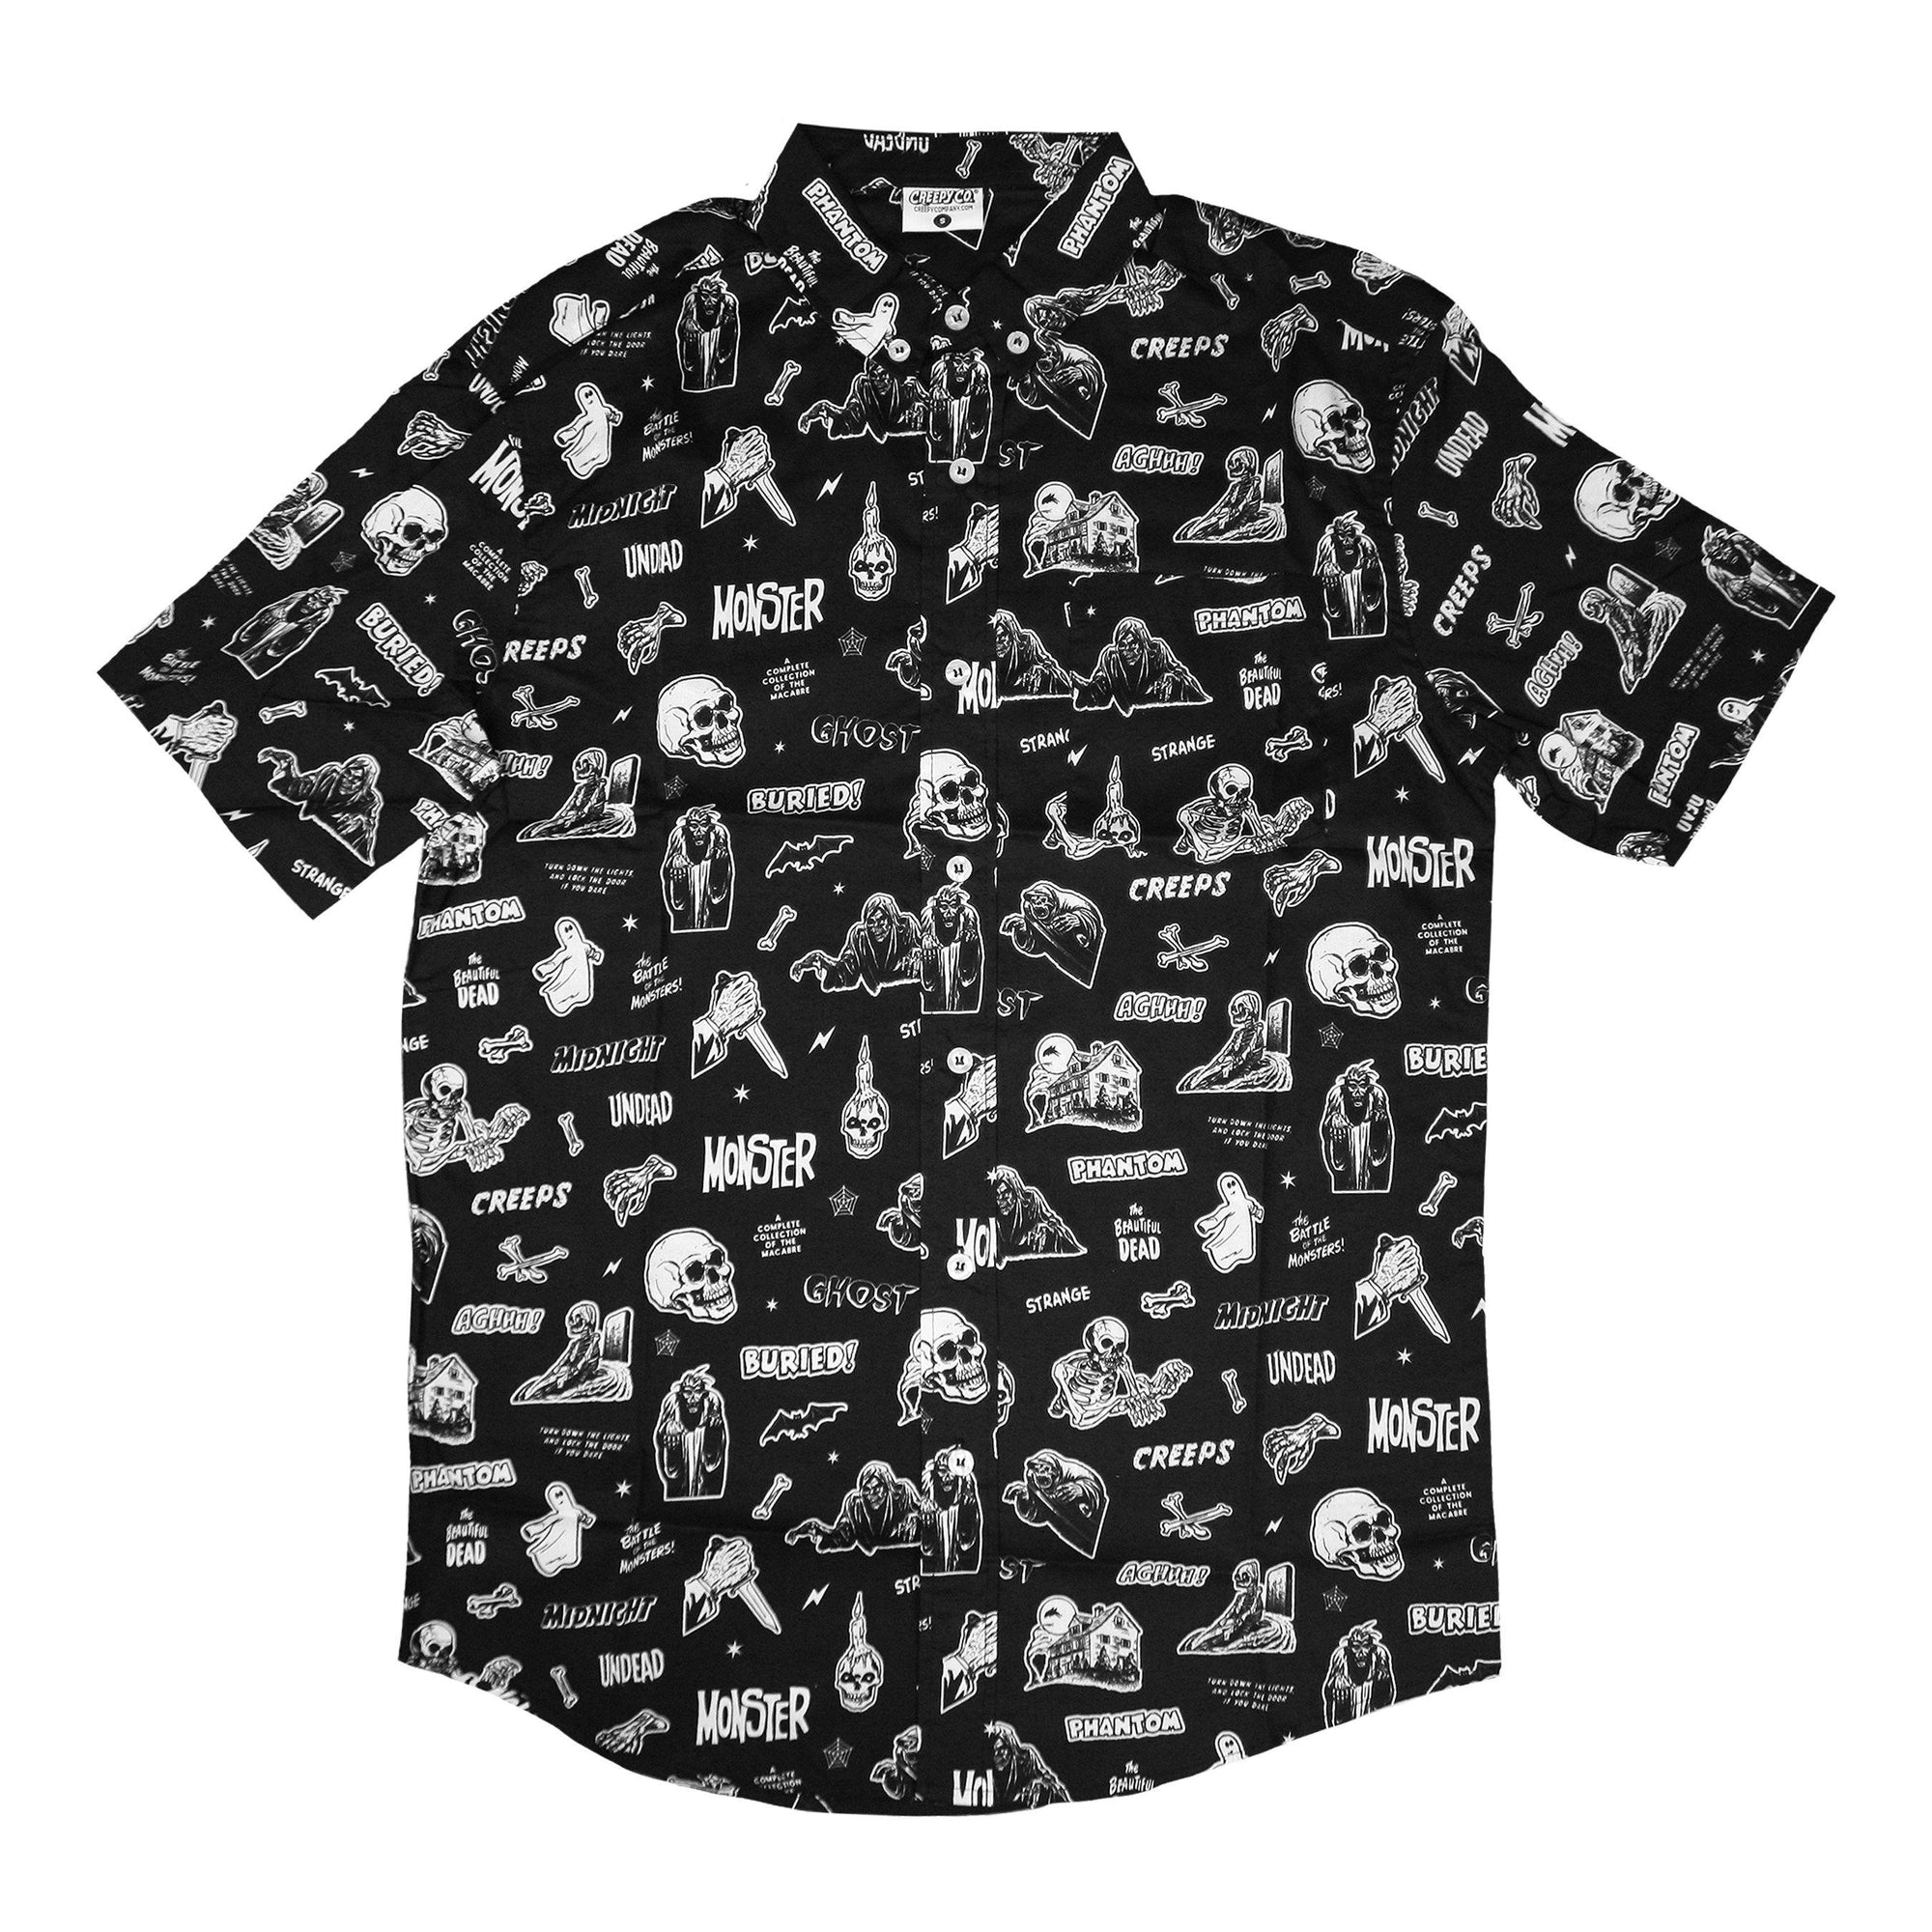 483104d8 Vintage Horror Comix Button-Up Shirt - Creepy Co.